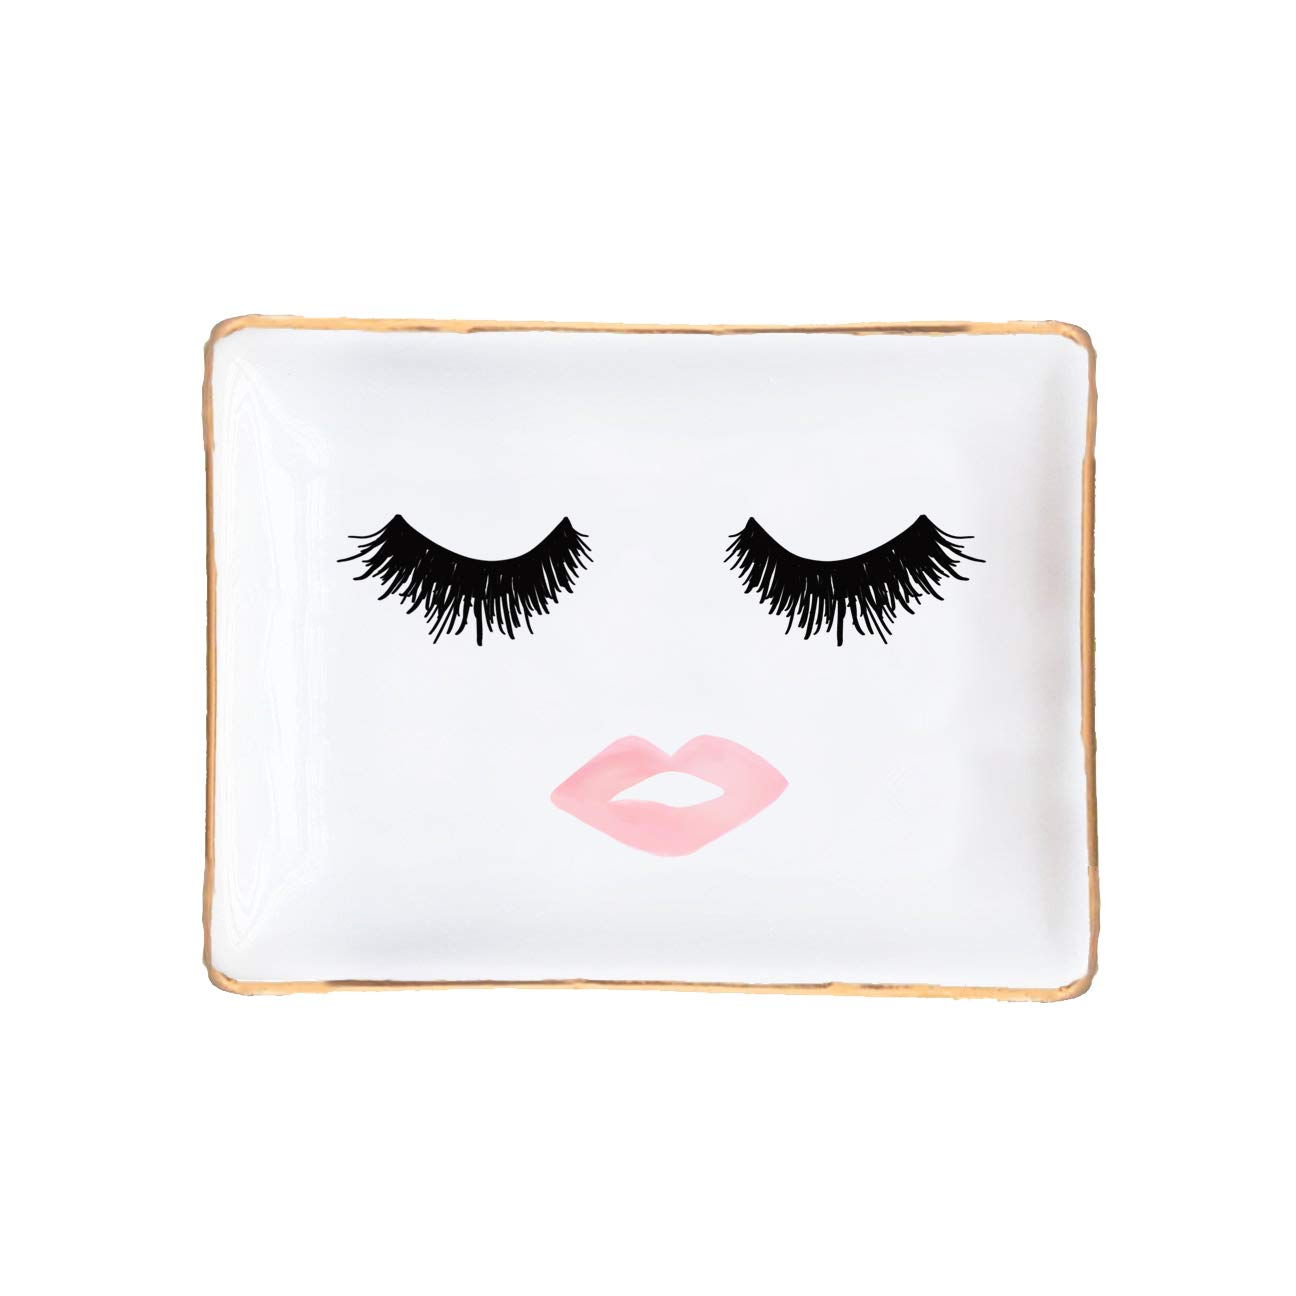 Eyelashes and Lips Face Ceramic Jewelry Dish | Gift for Her Pink and Gold Office Decor Lashes Makeup Cosmetic Bridesmaid Organizer Trinket Tray Small Eyelash Desk Accessories Hand Drawn